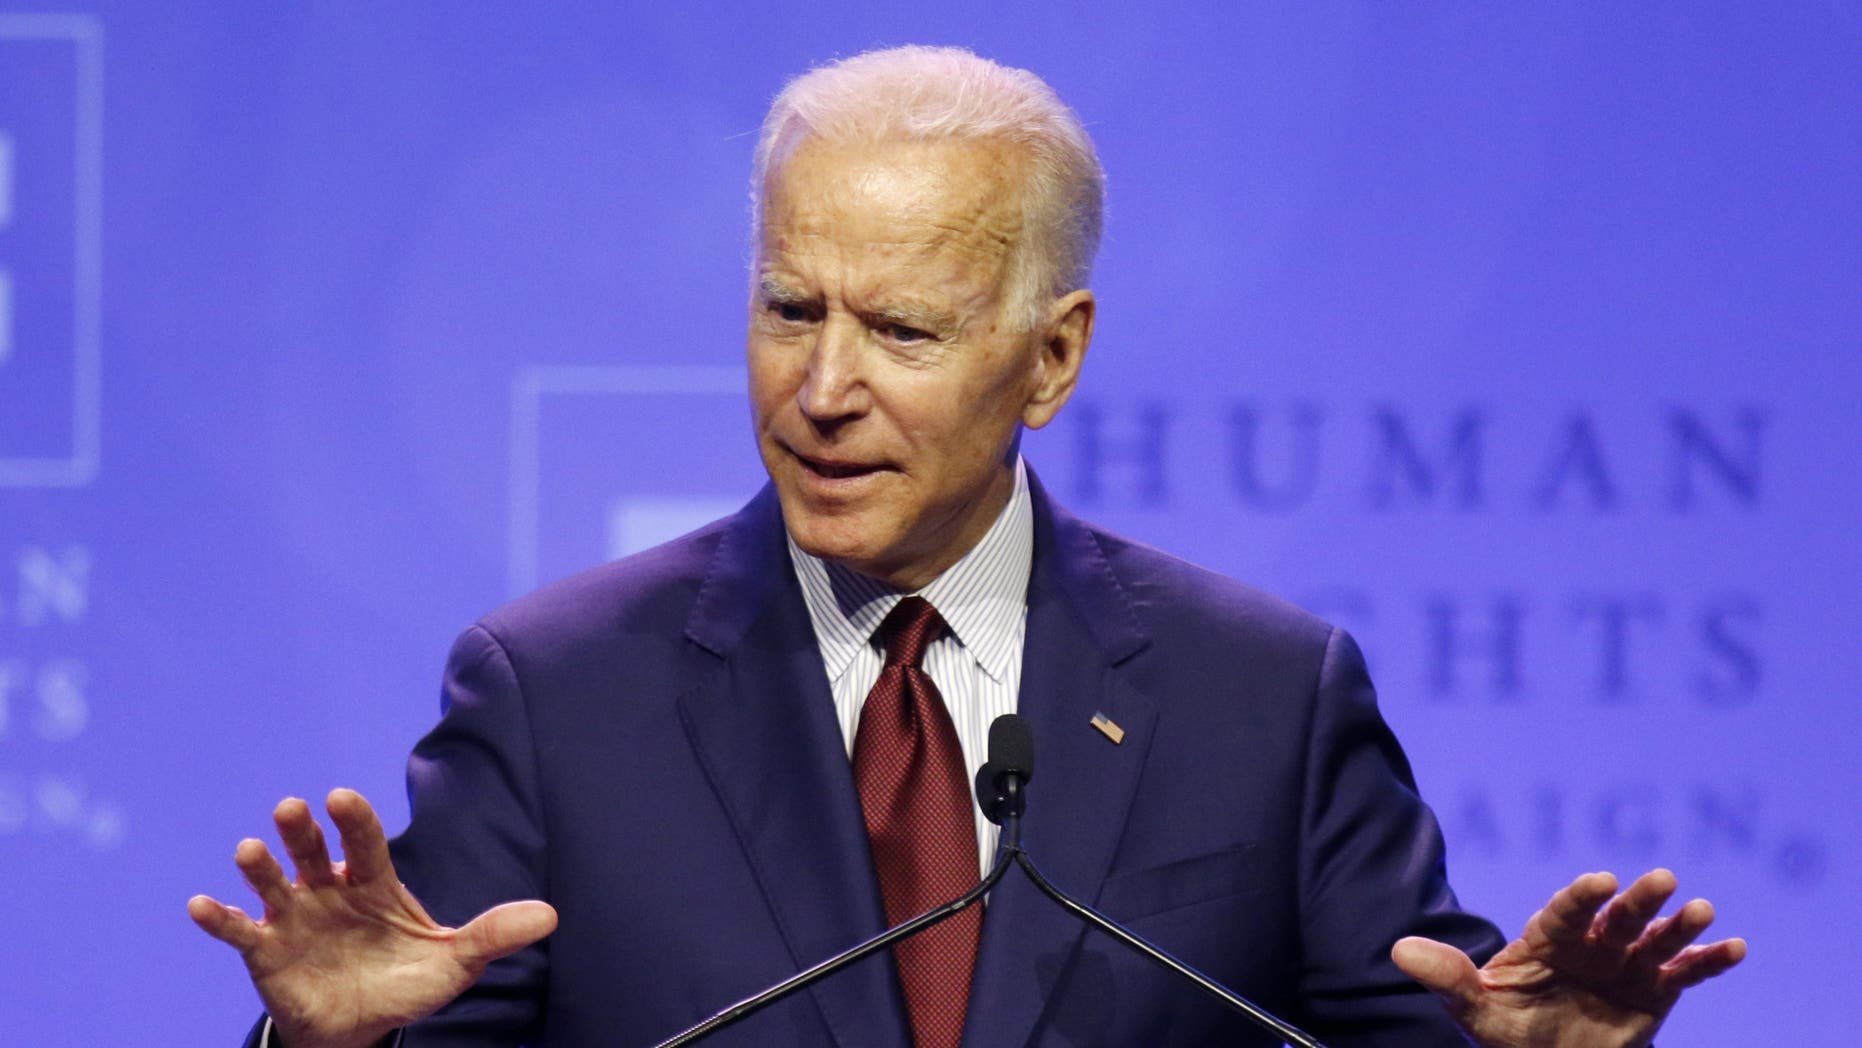 Democratic presidential candidate and former Vice President Joe Biden speaks in Columbus, Ohio, over the weekend. (AP Photo/Paul Vernon)